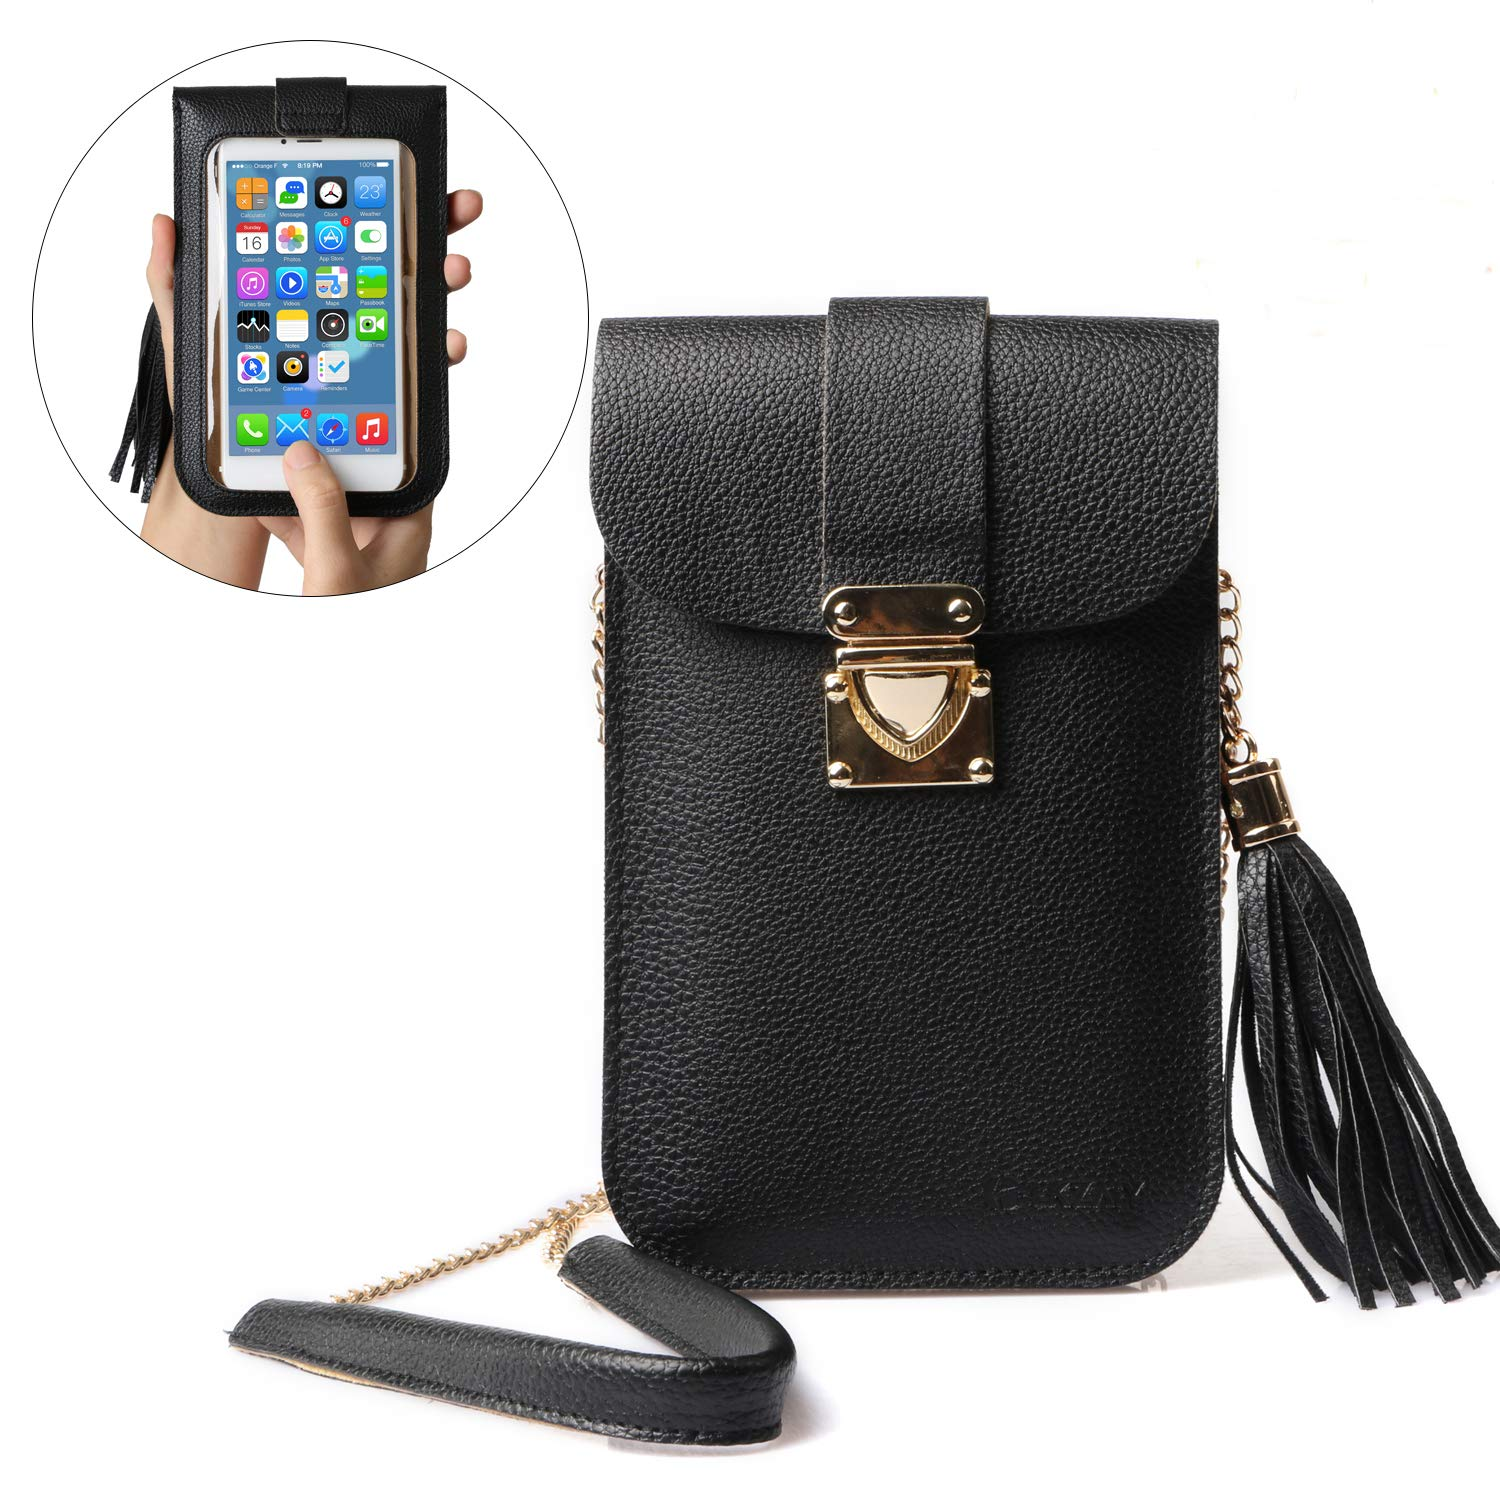 119f1b00c20f 60% discount on Cell Phone Bag